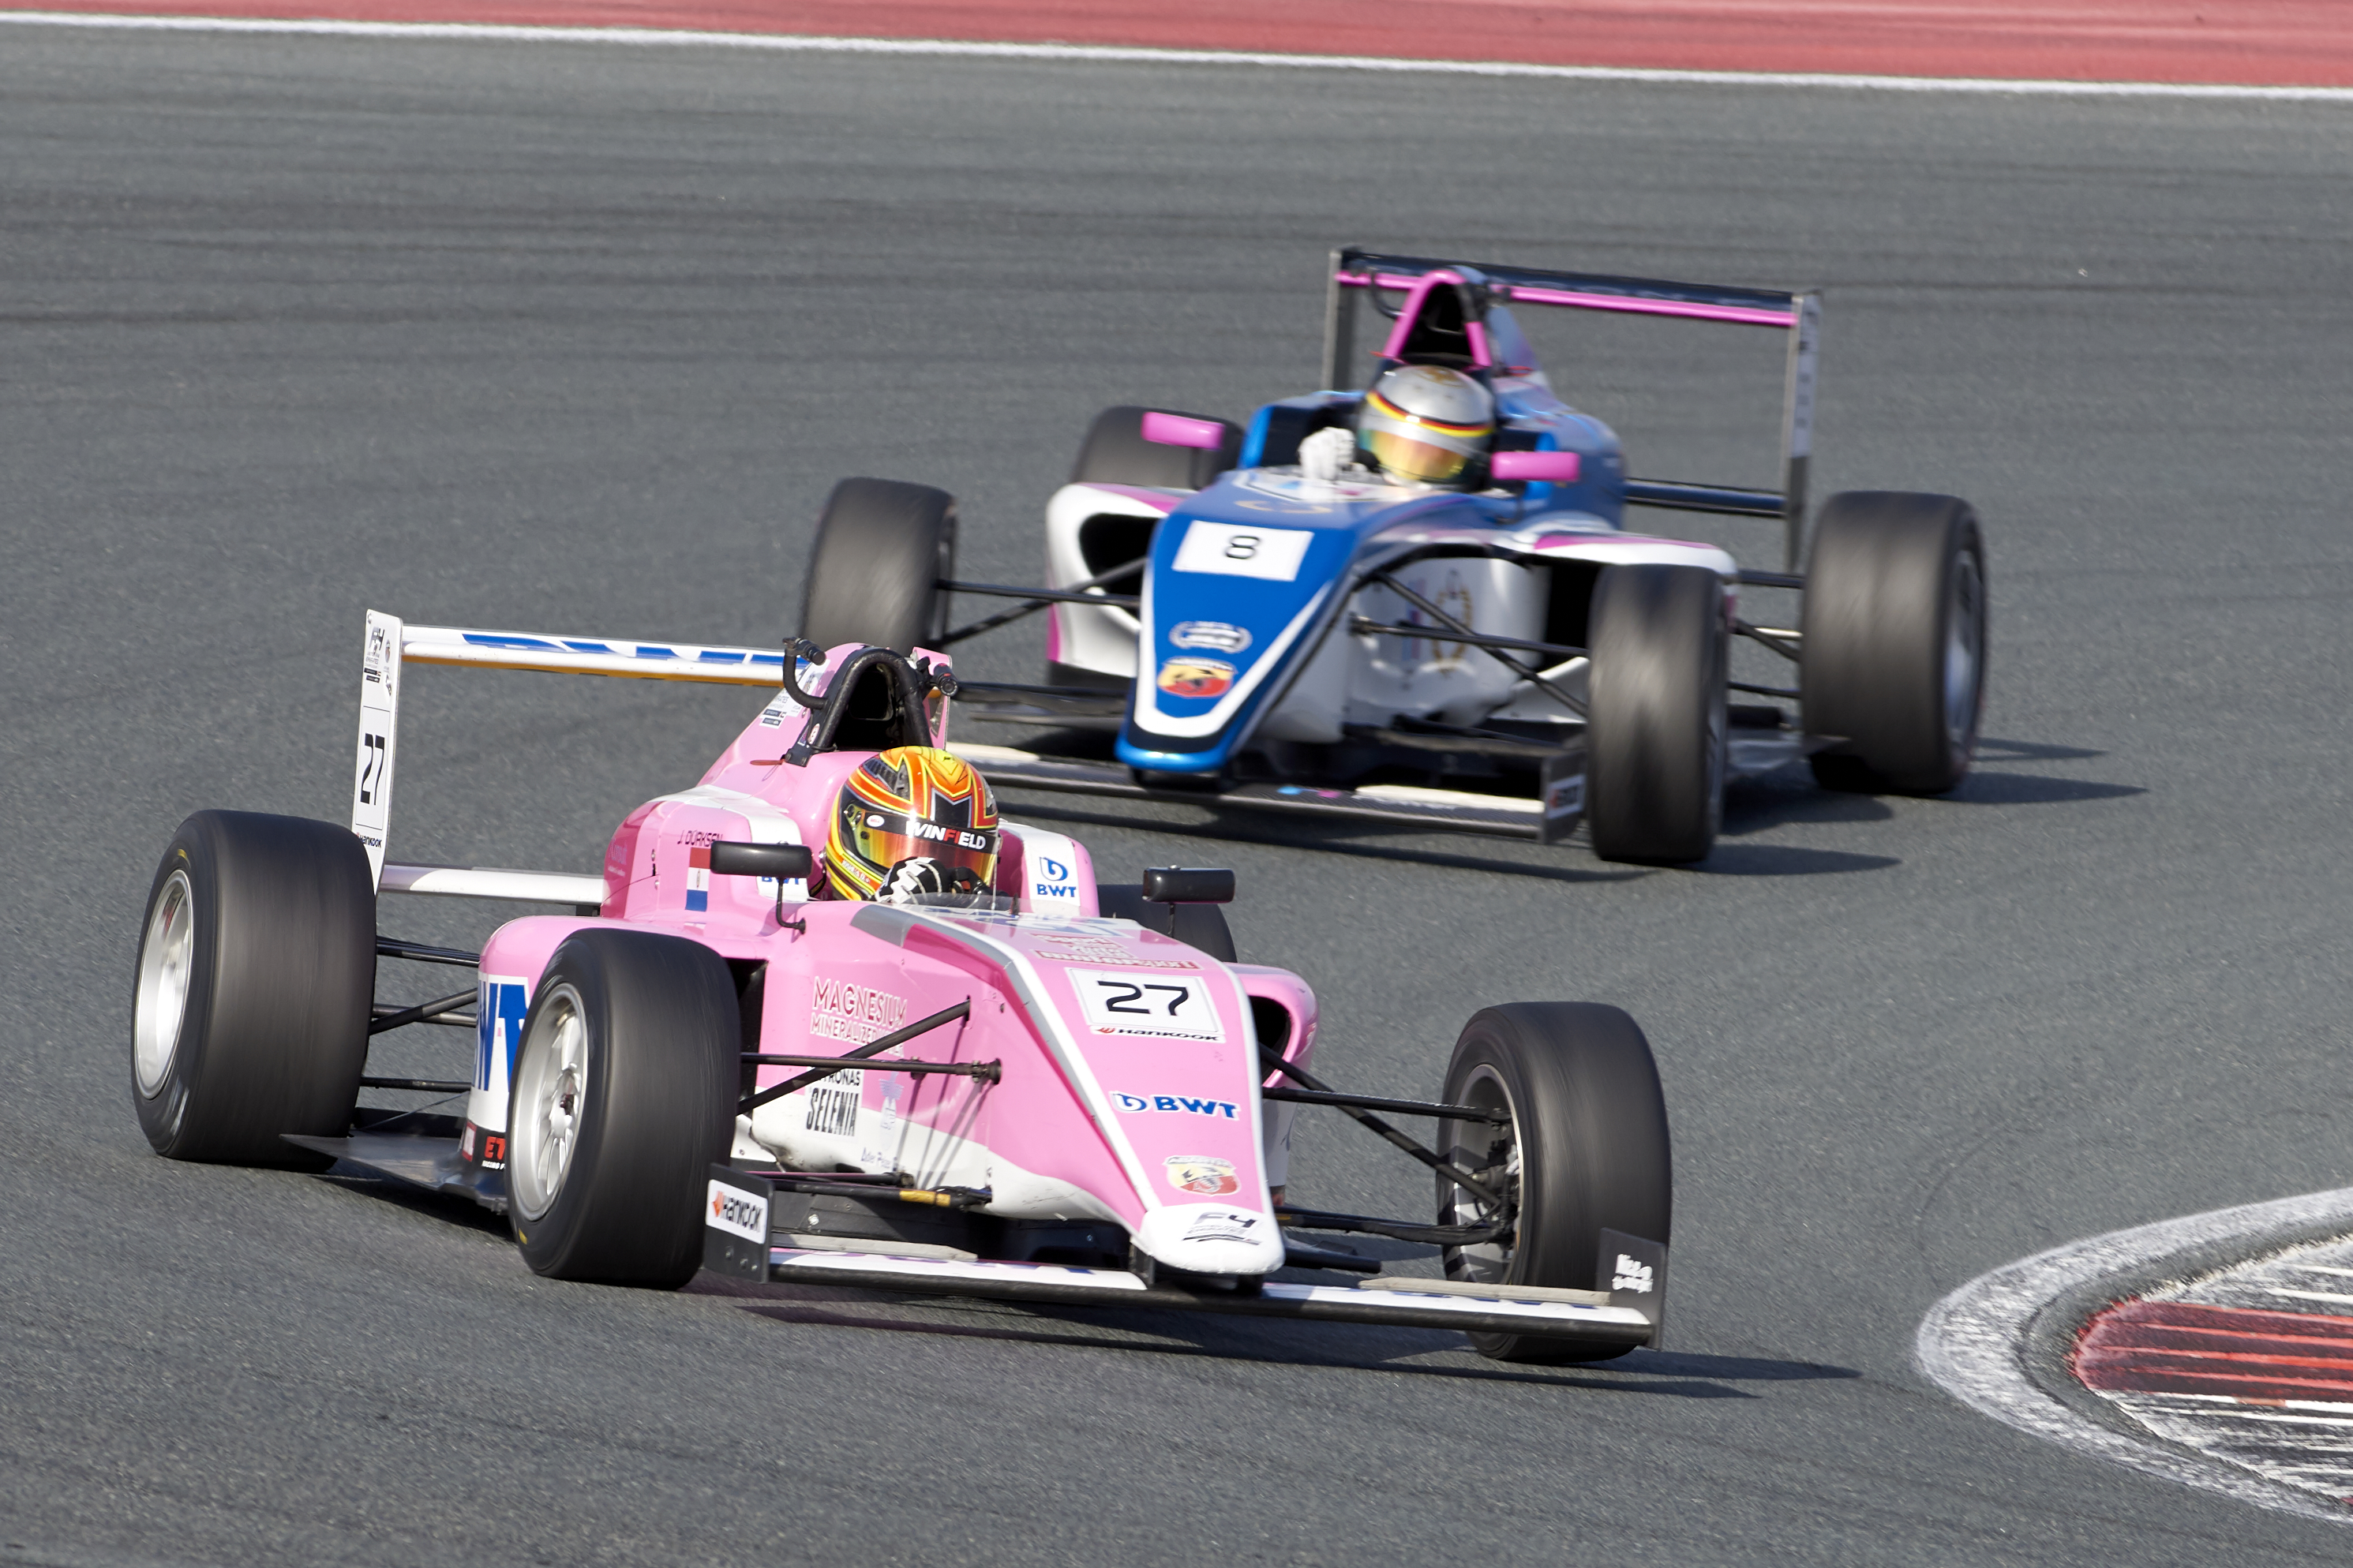 ROUND 1 WINNERS AT YAS MARINA